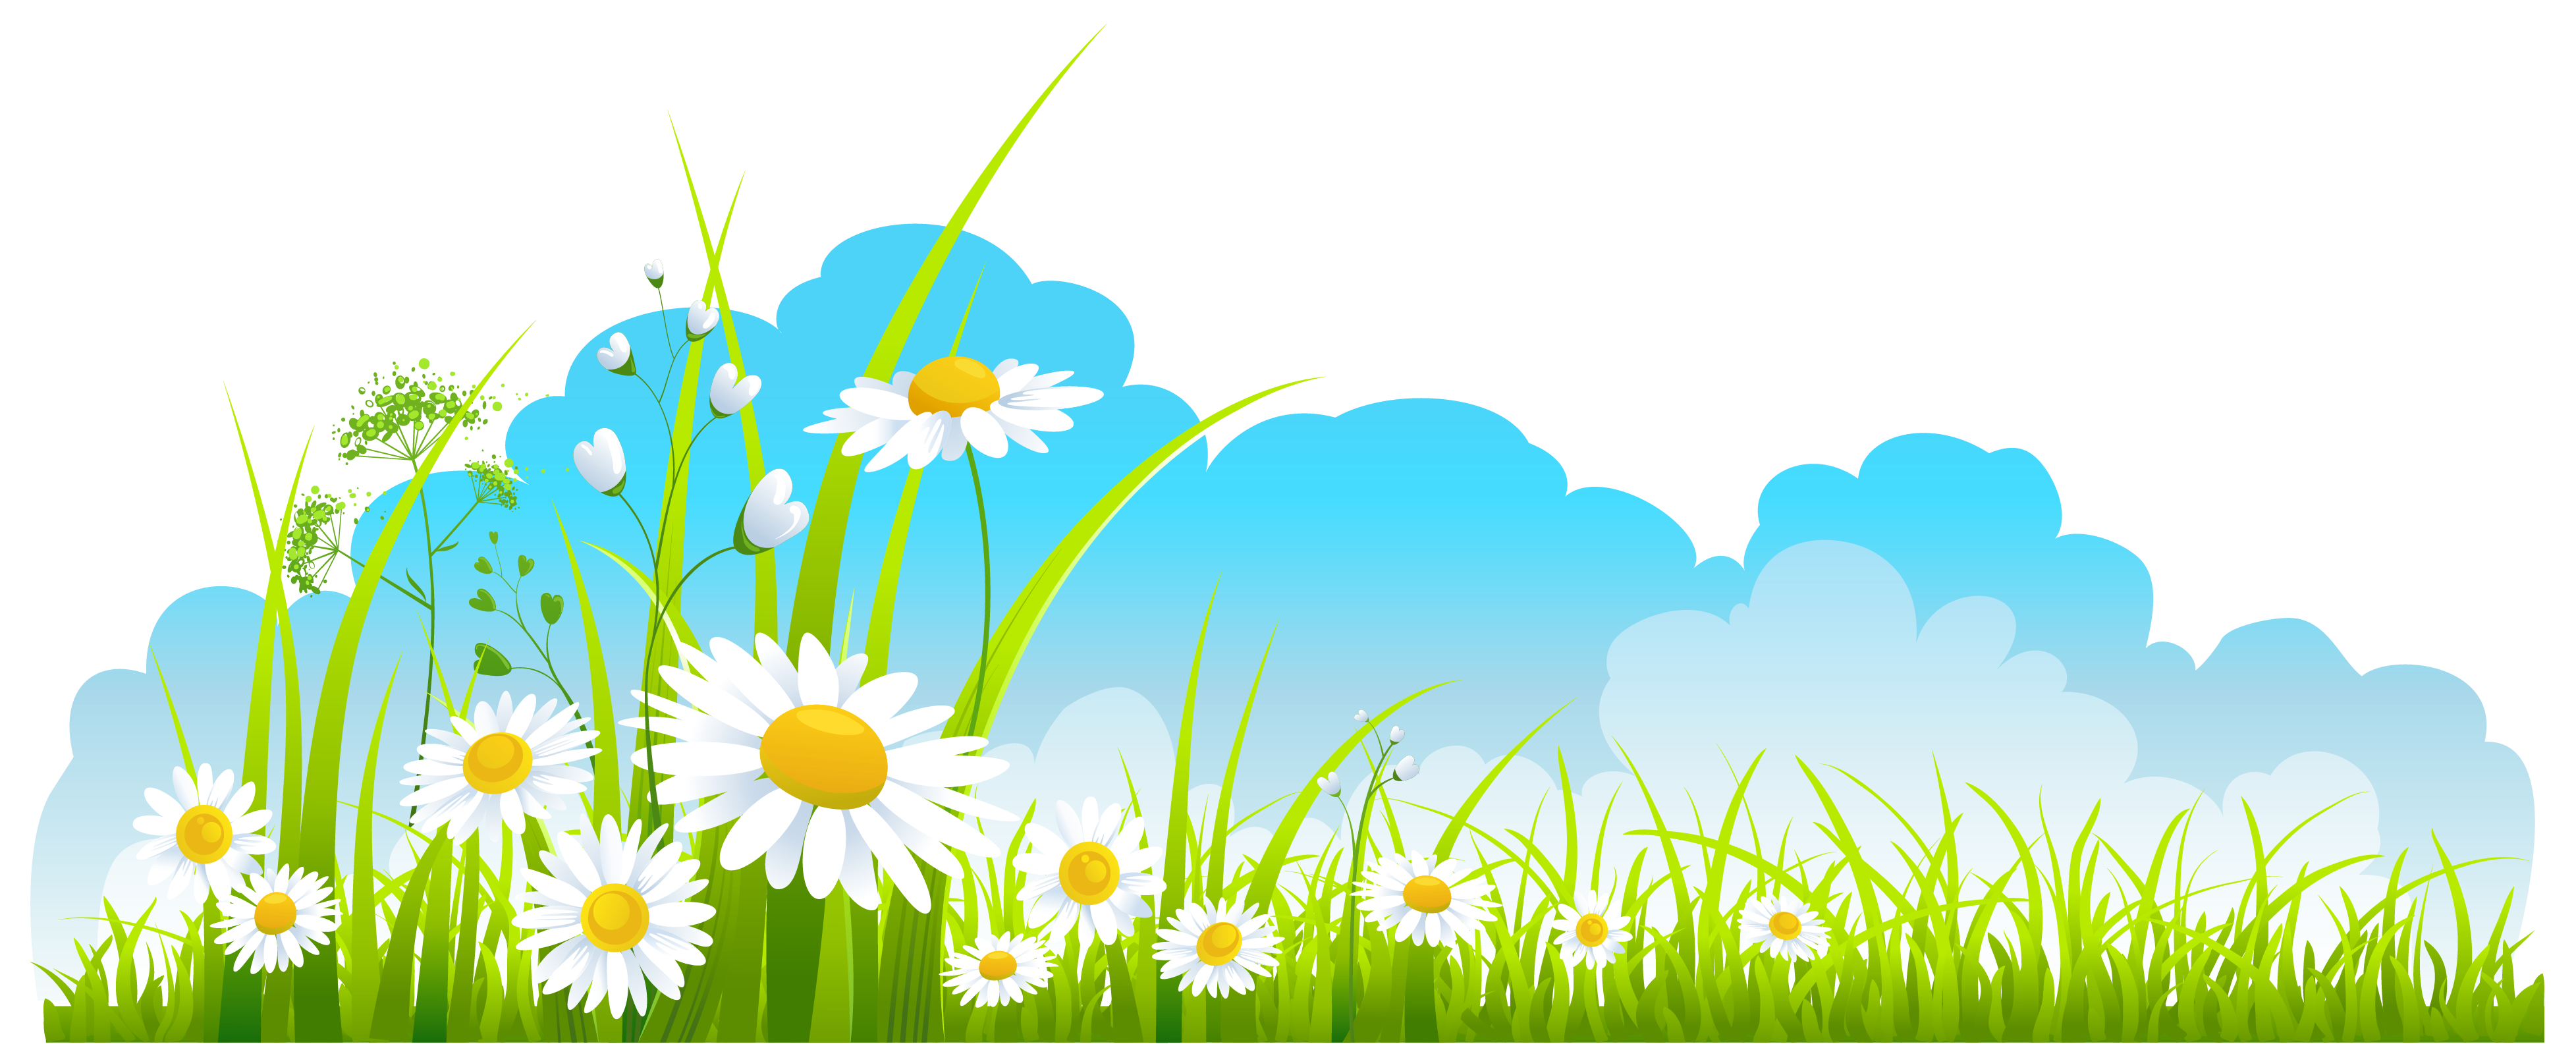 Nature clipart spring. Decor sky grass and